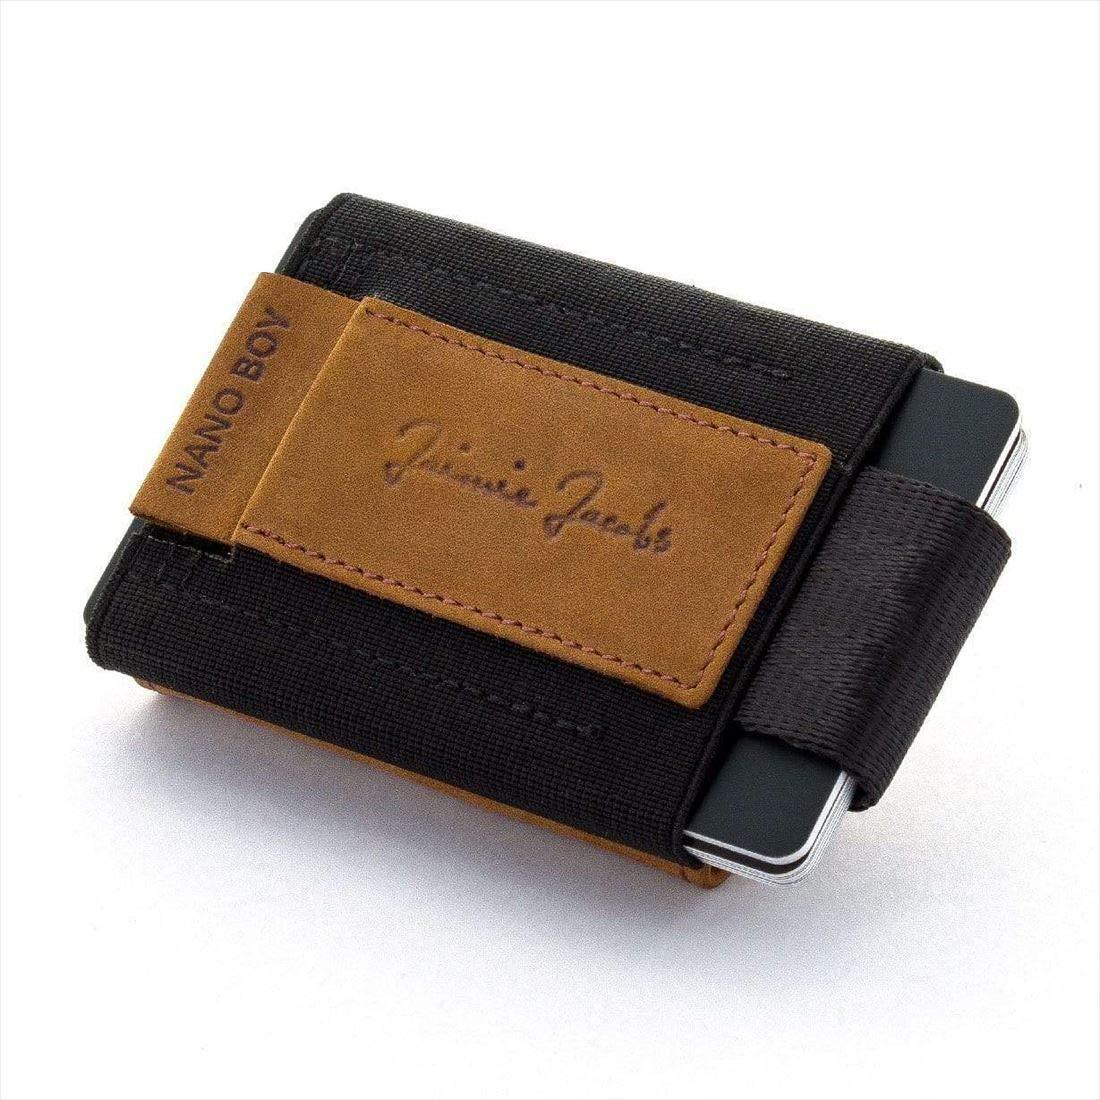 Jaimie Jacobs NANO BOY POCKET コンパクト財布 ( マネークリップ 小銭入れ カードケース ギフトボックス付き) ライトブラウン Buffalo Leather 正規輸入品